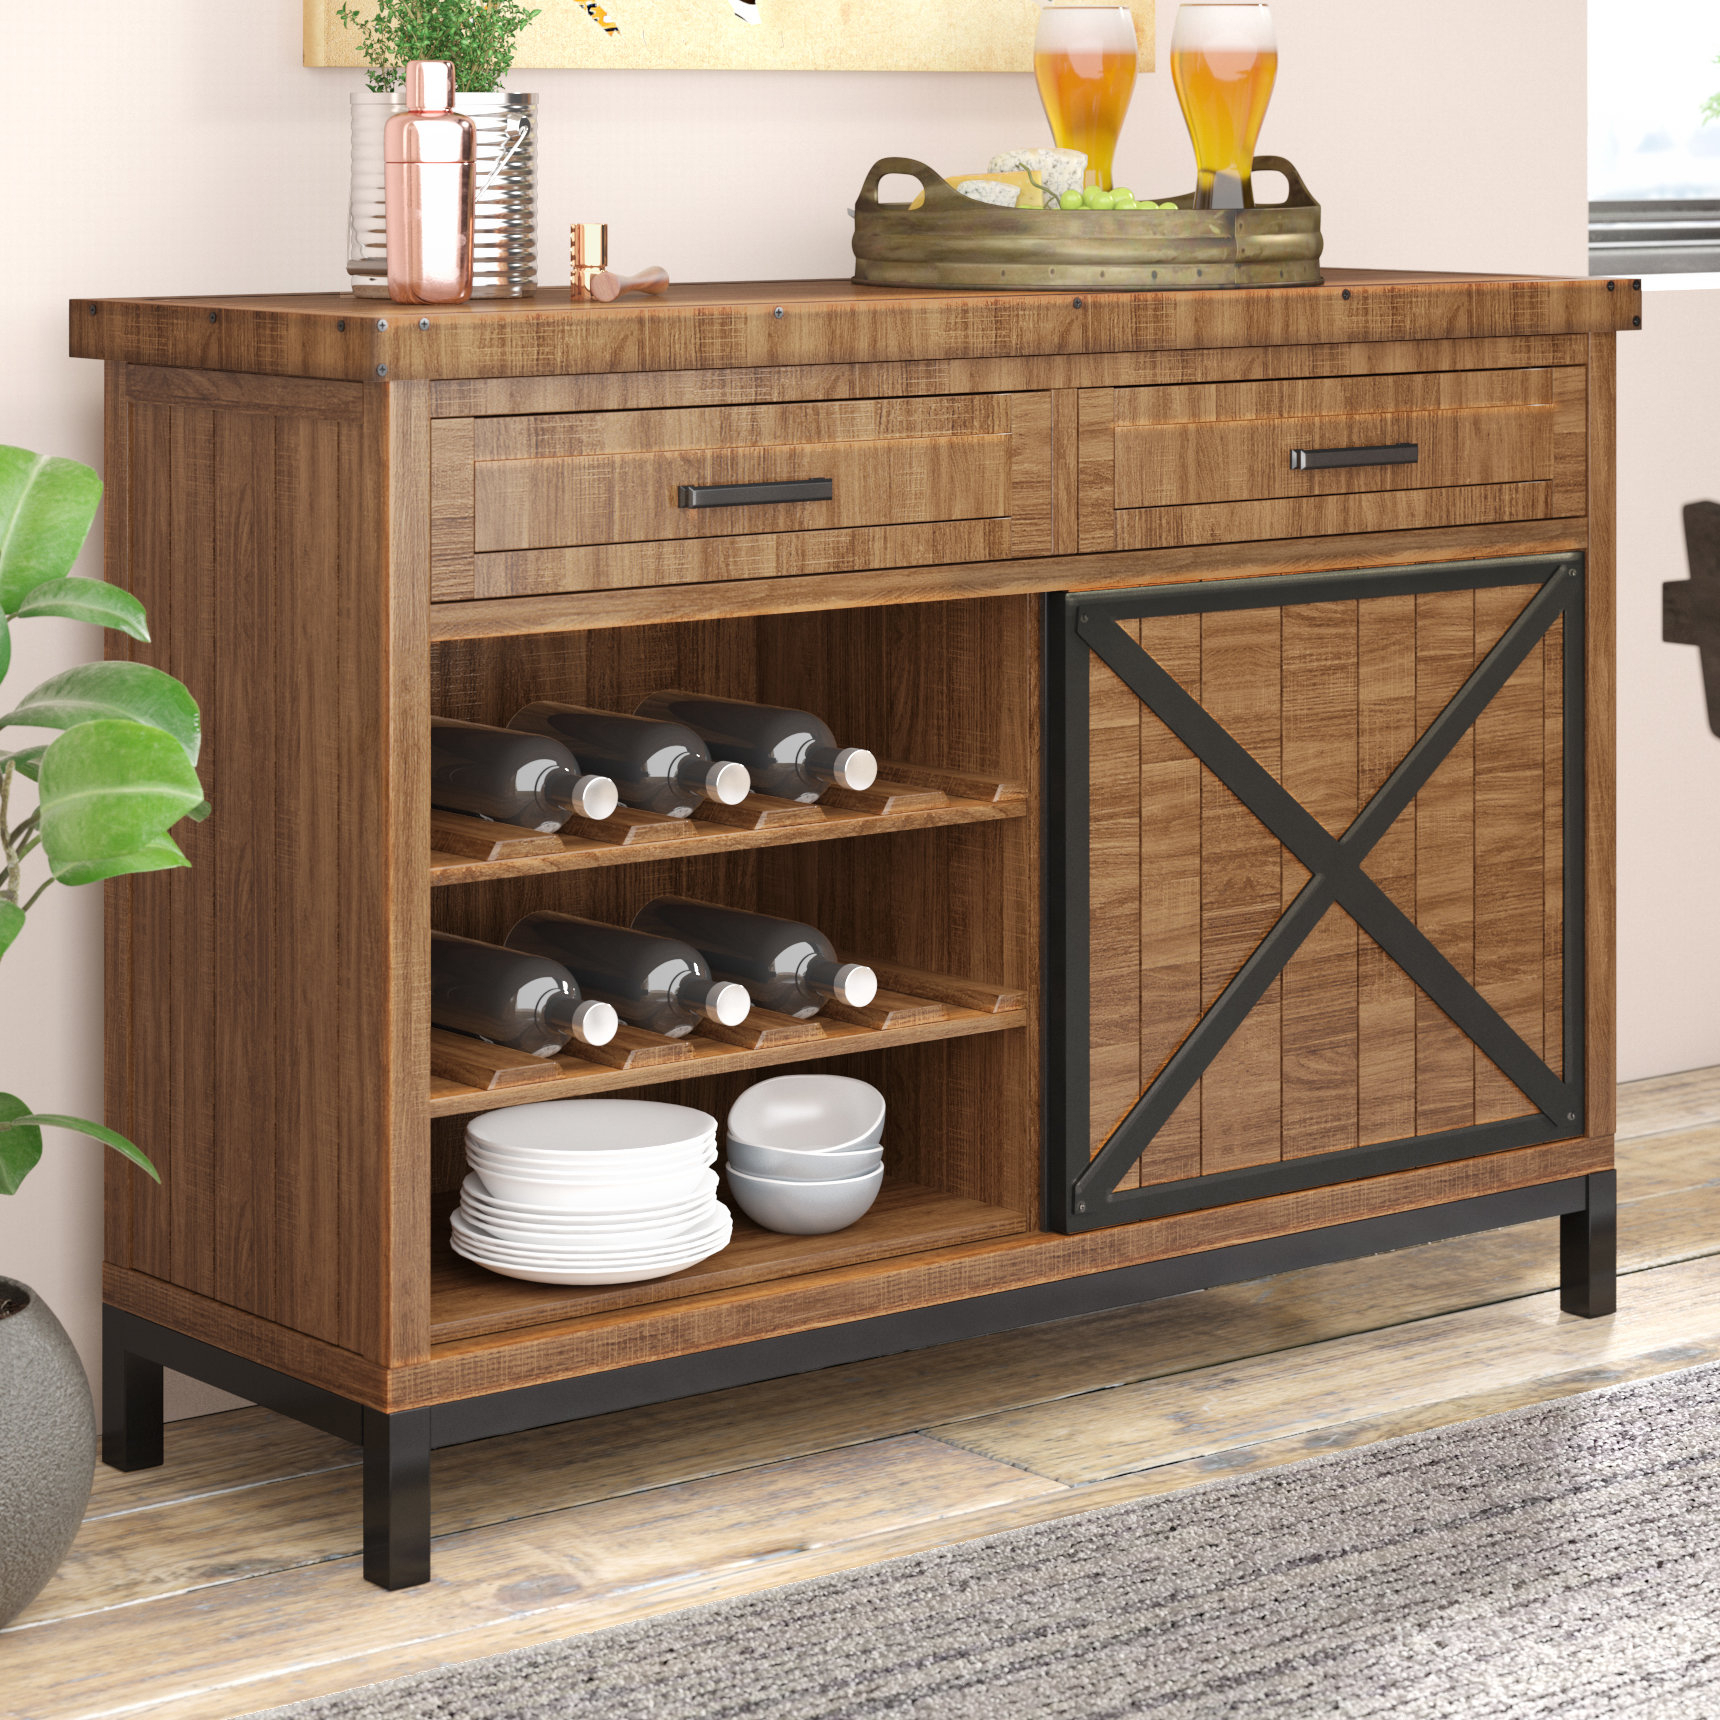 Bronze Sideboards & Buffets You'll Love In 2019 | Wayfair intended for Chaffins Sideboards (Image 10 of 30)